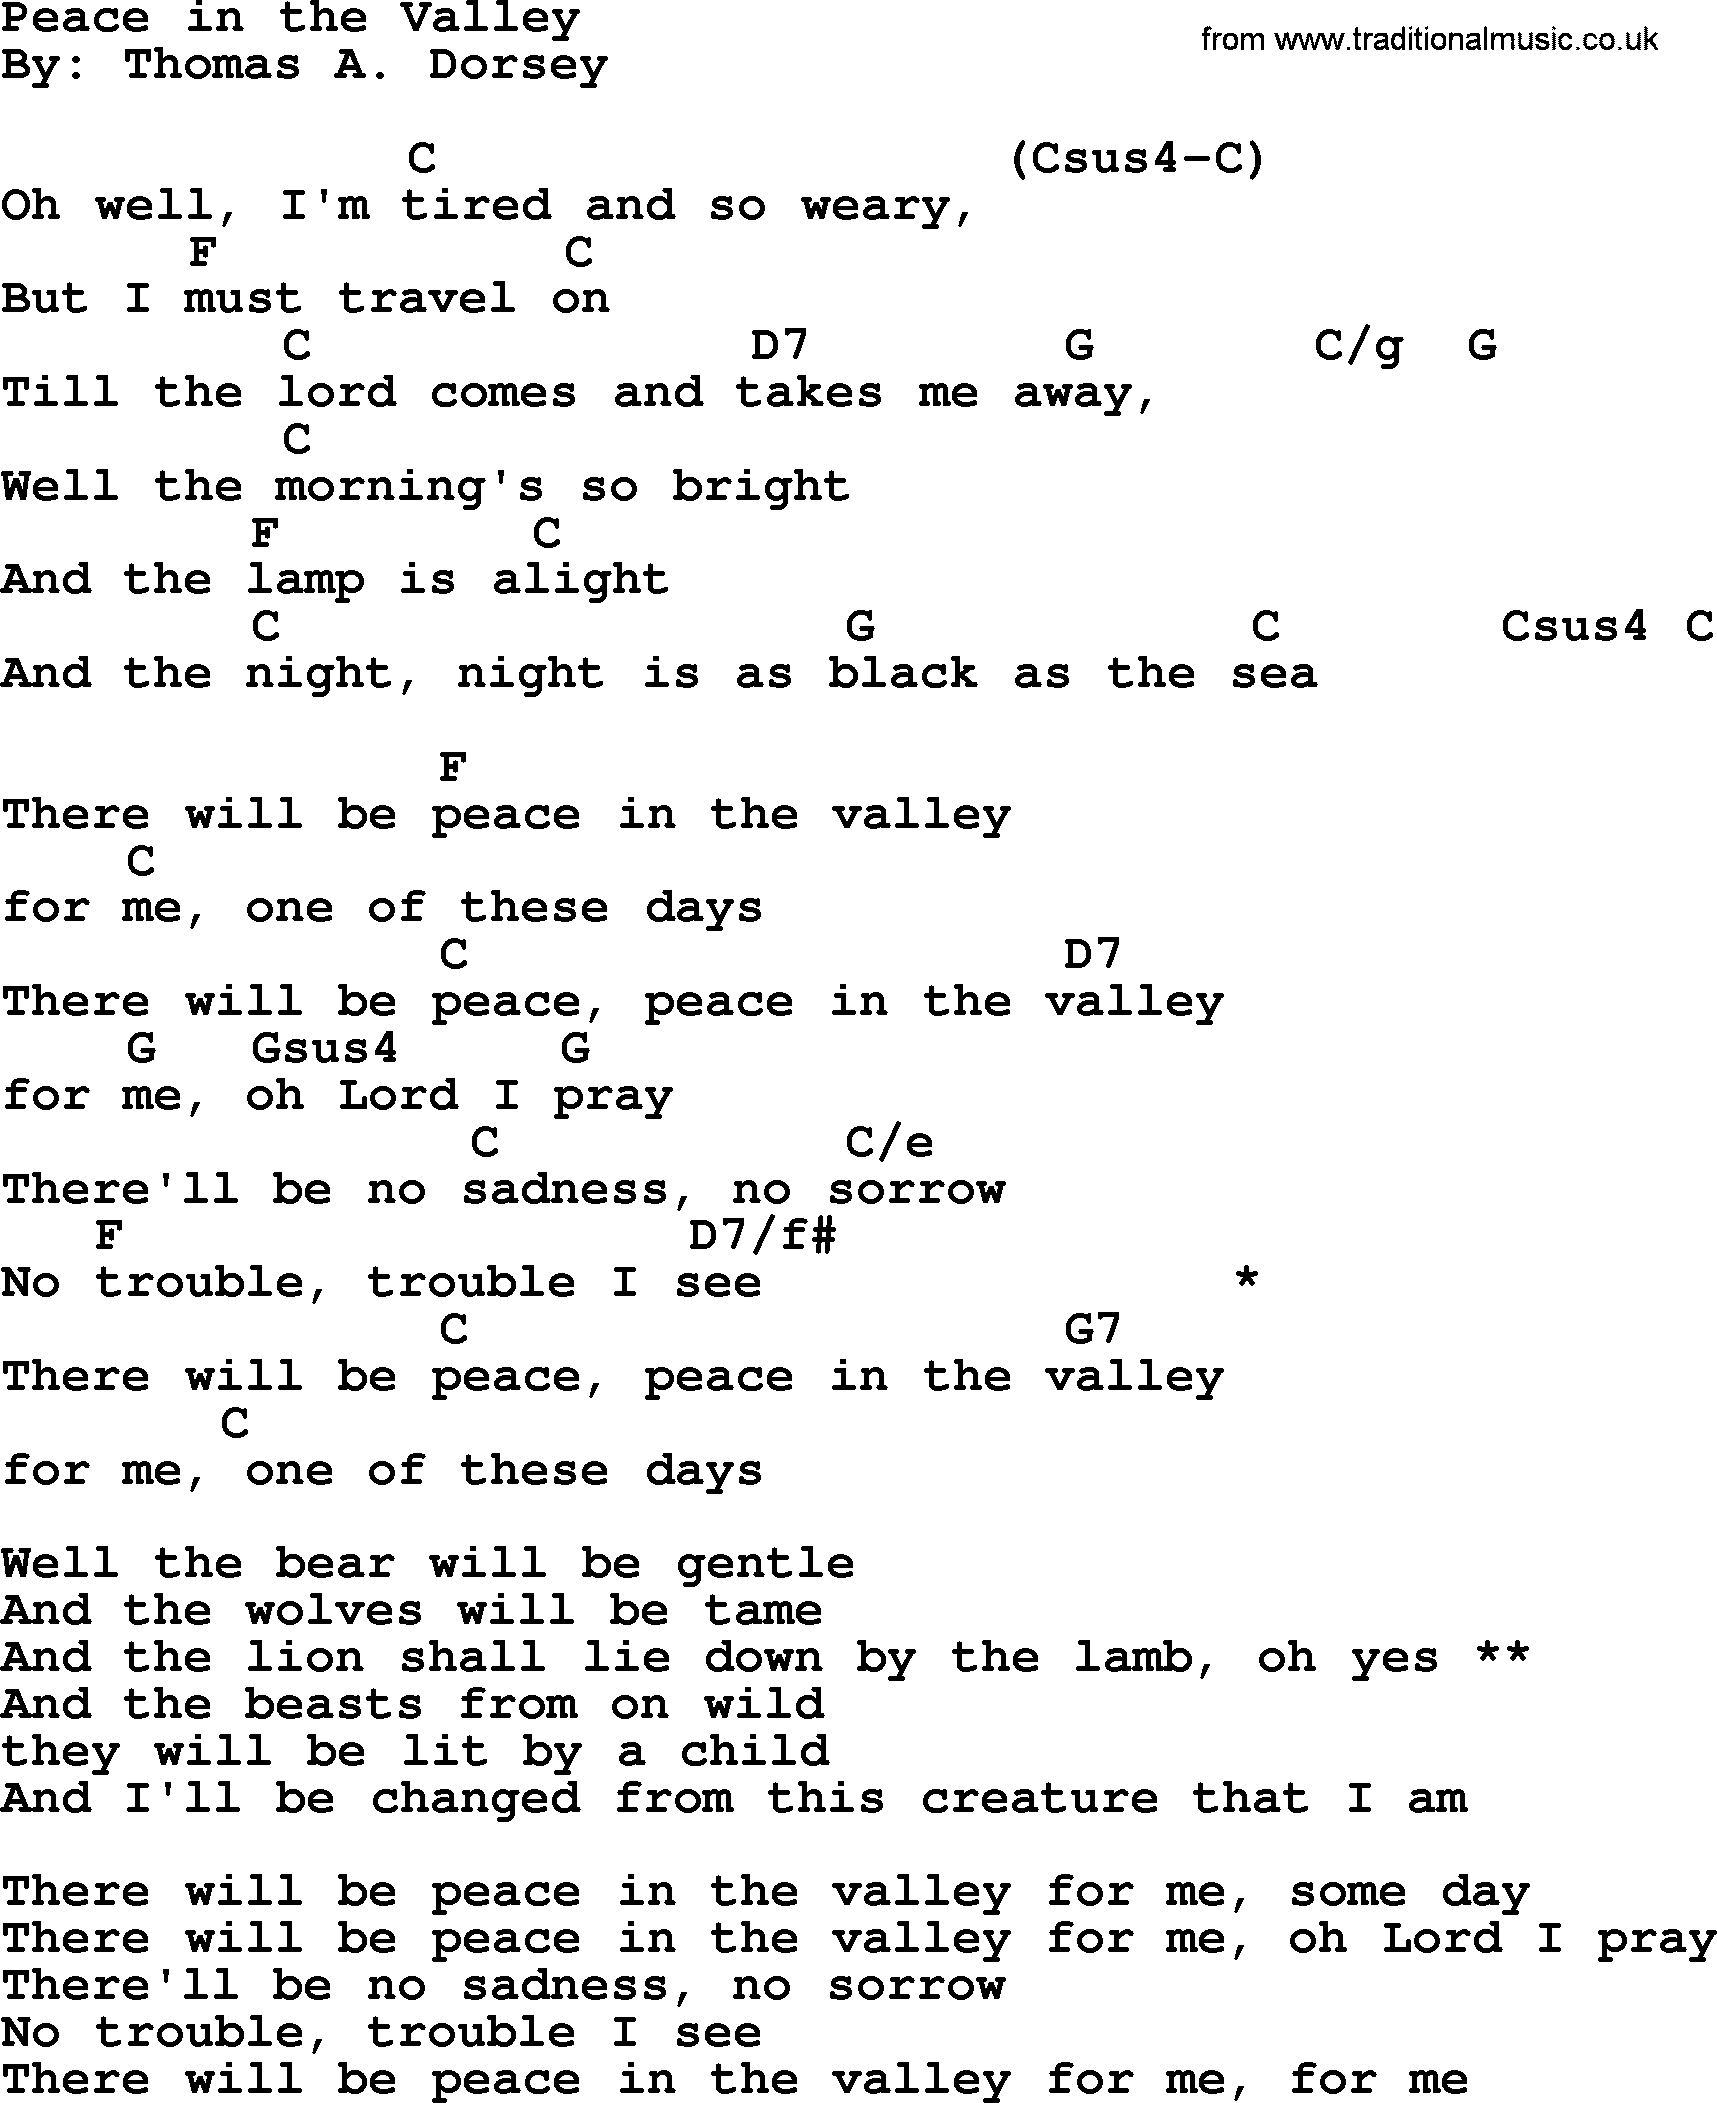 Peace in the valley song lyrics